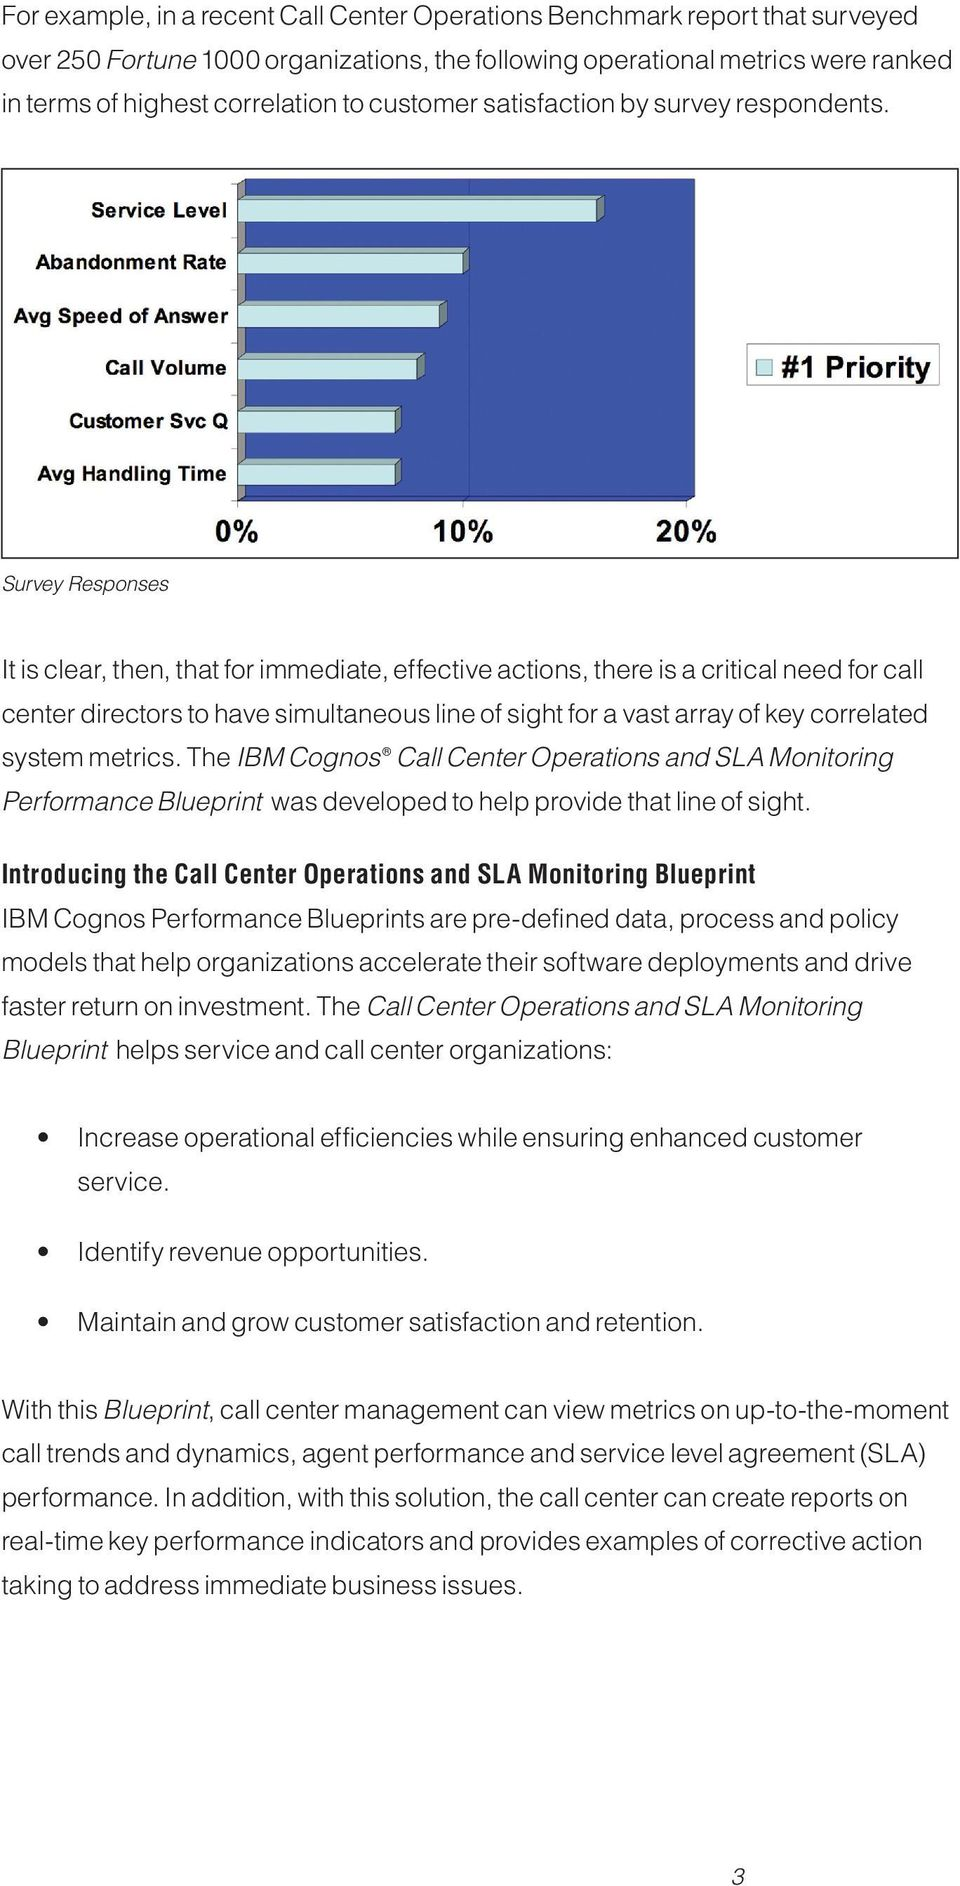 Survey Responses It is clear, then, that for immediate, effective actions, there is a critical need for call center directors to have simultaneous line of sight for a vast array of key correlated